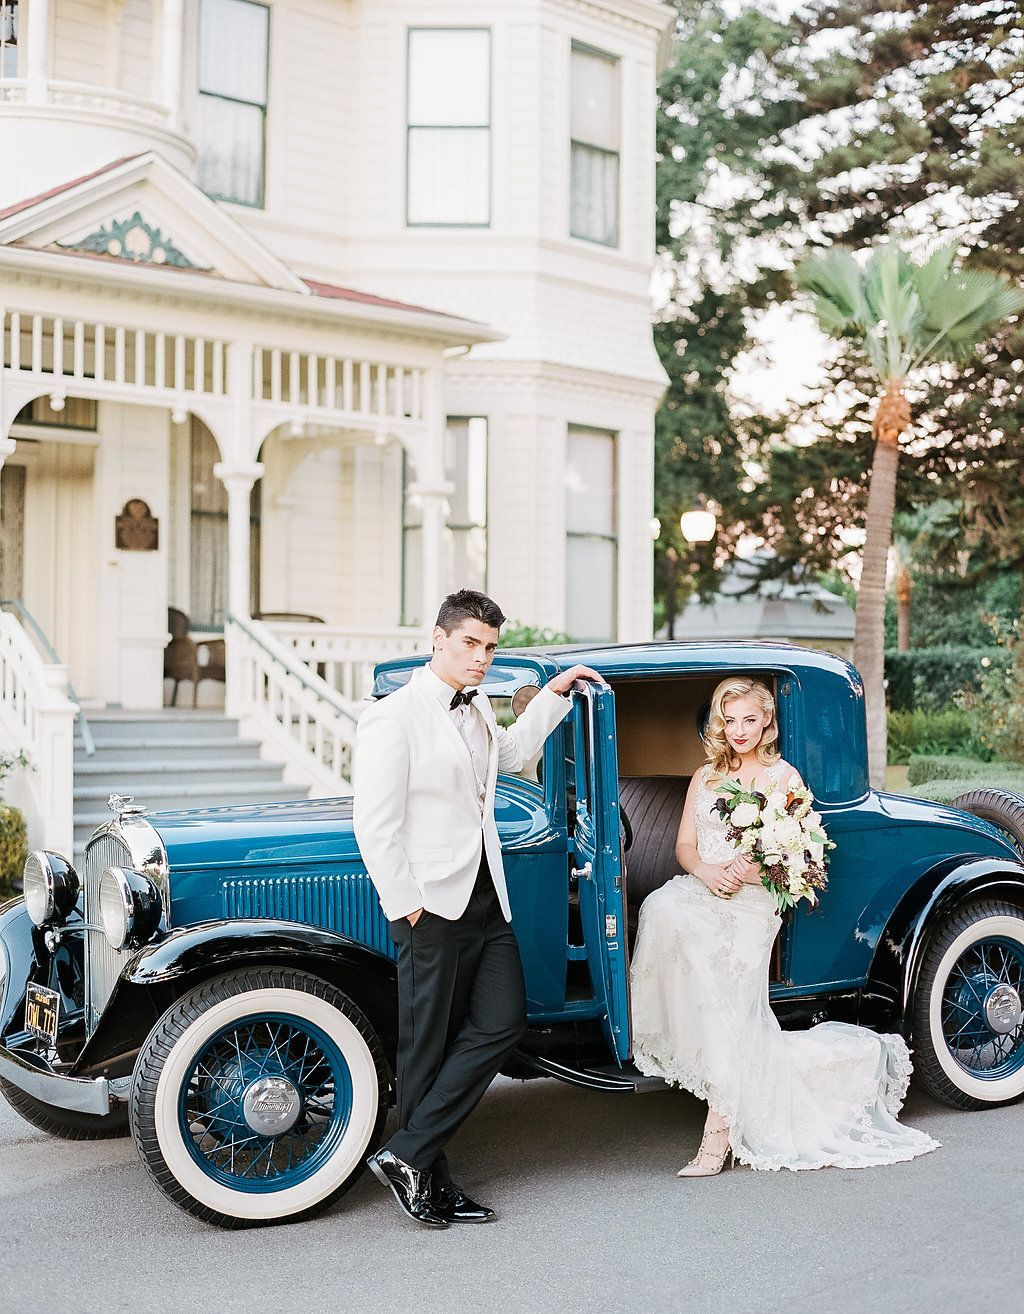 This Wedding Inspiration Is Dripping with Old Hollywood Glam ...